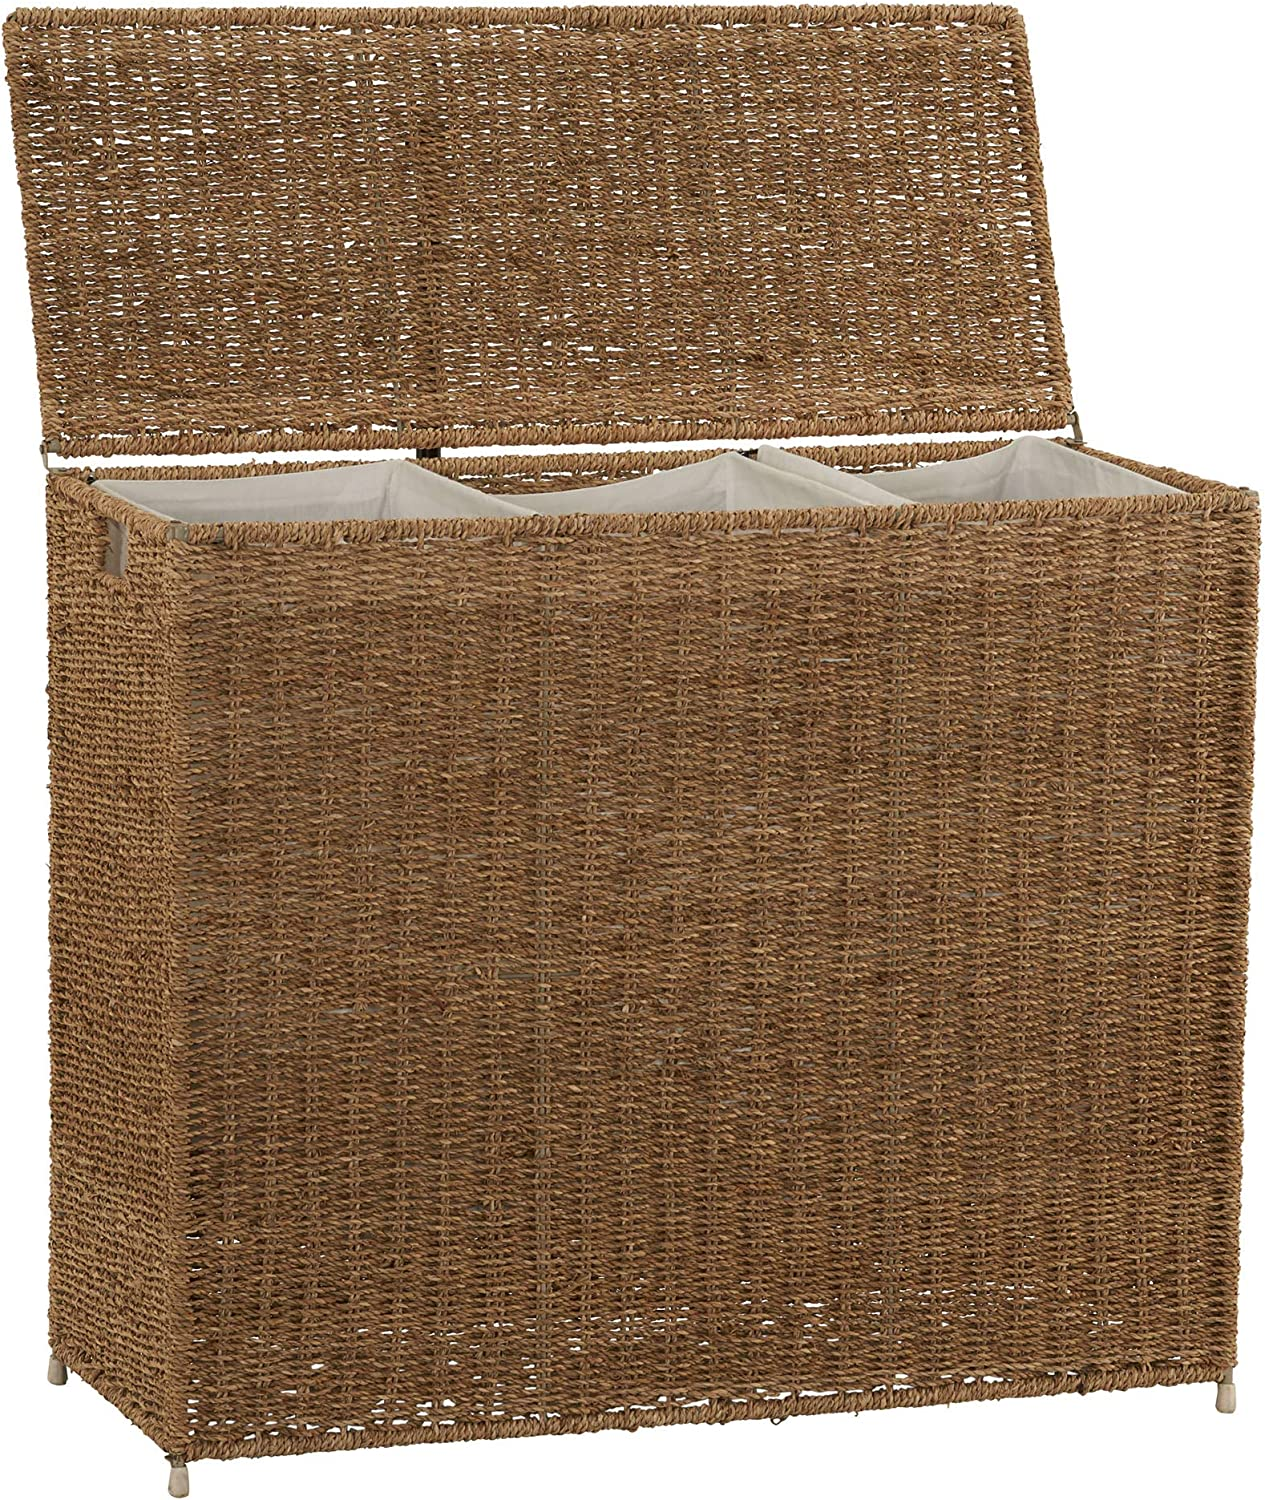 Household Essentials Brown ML-5445 Wicker 3 Compartment Laundry Sorter with Lid | 3 Section Clothes Hamper